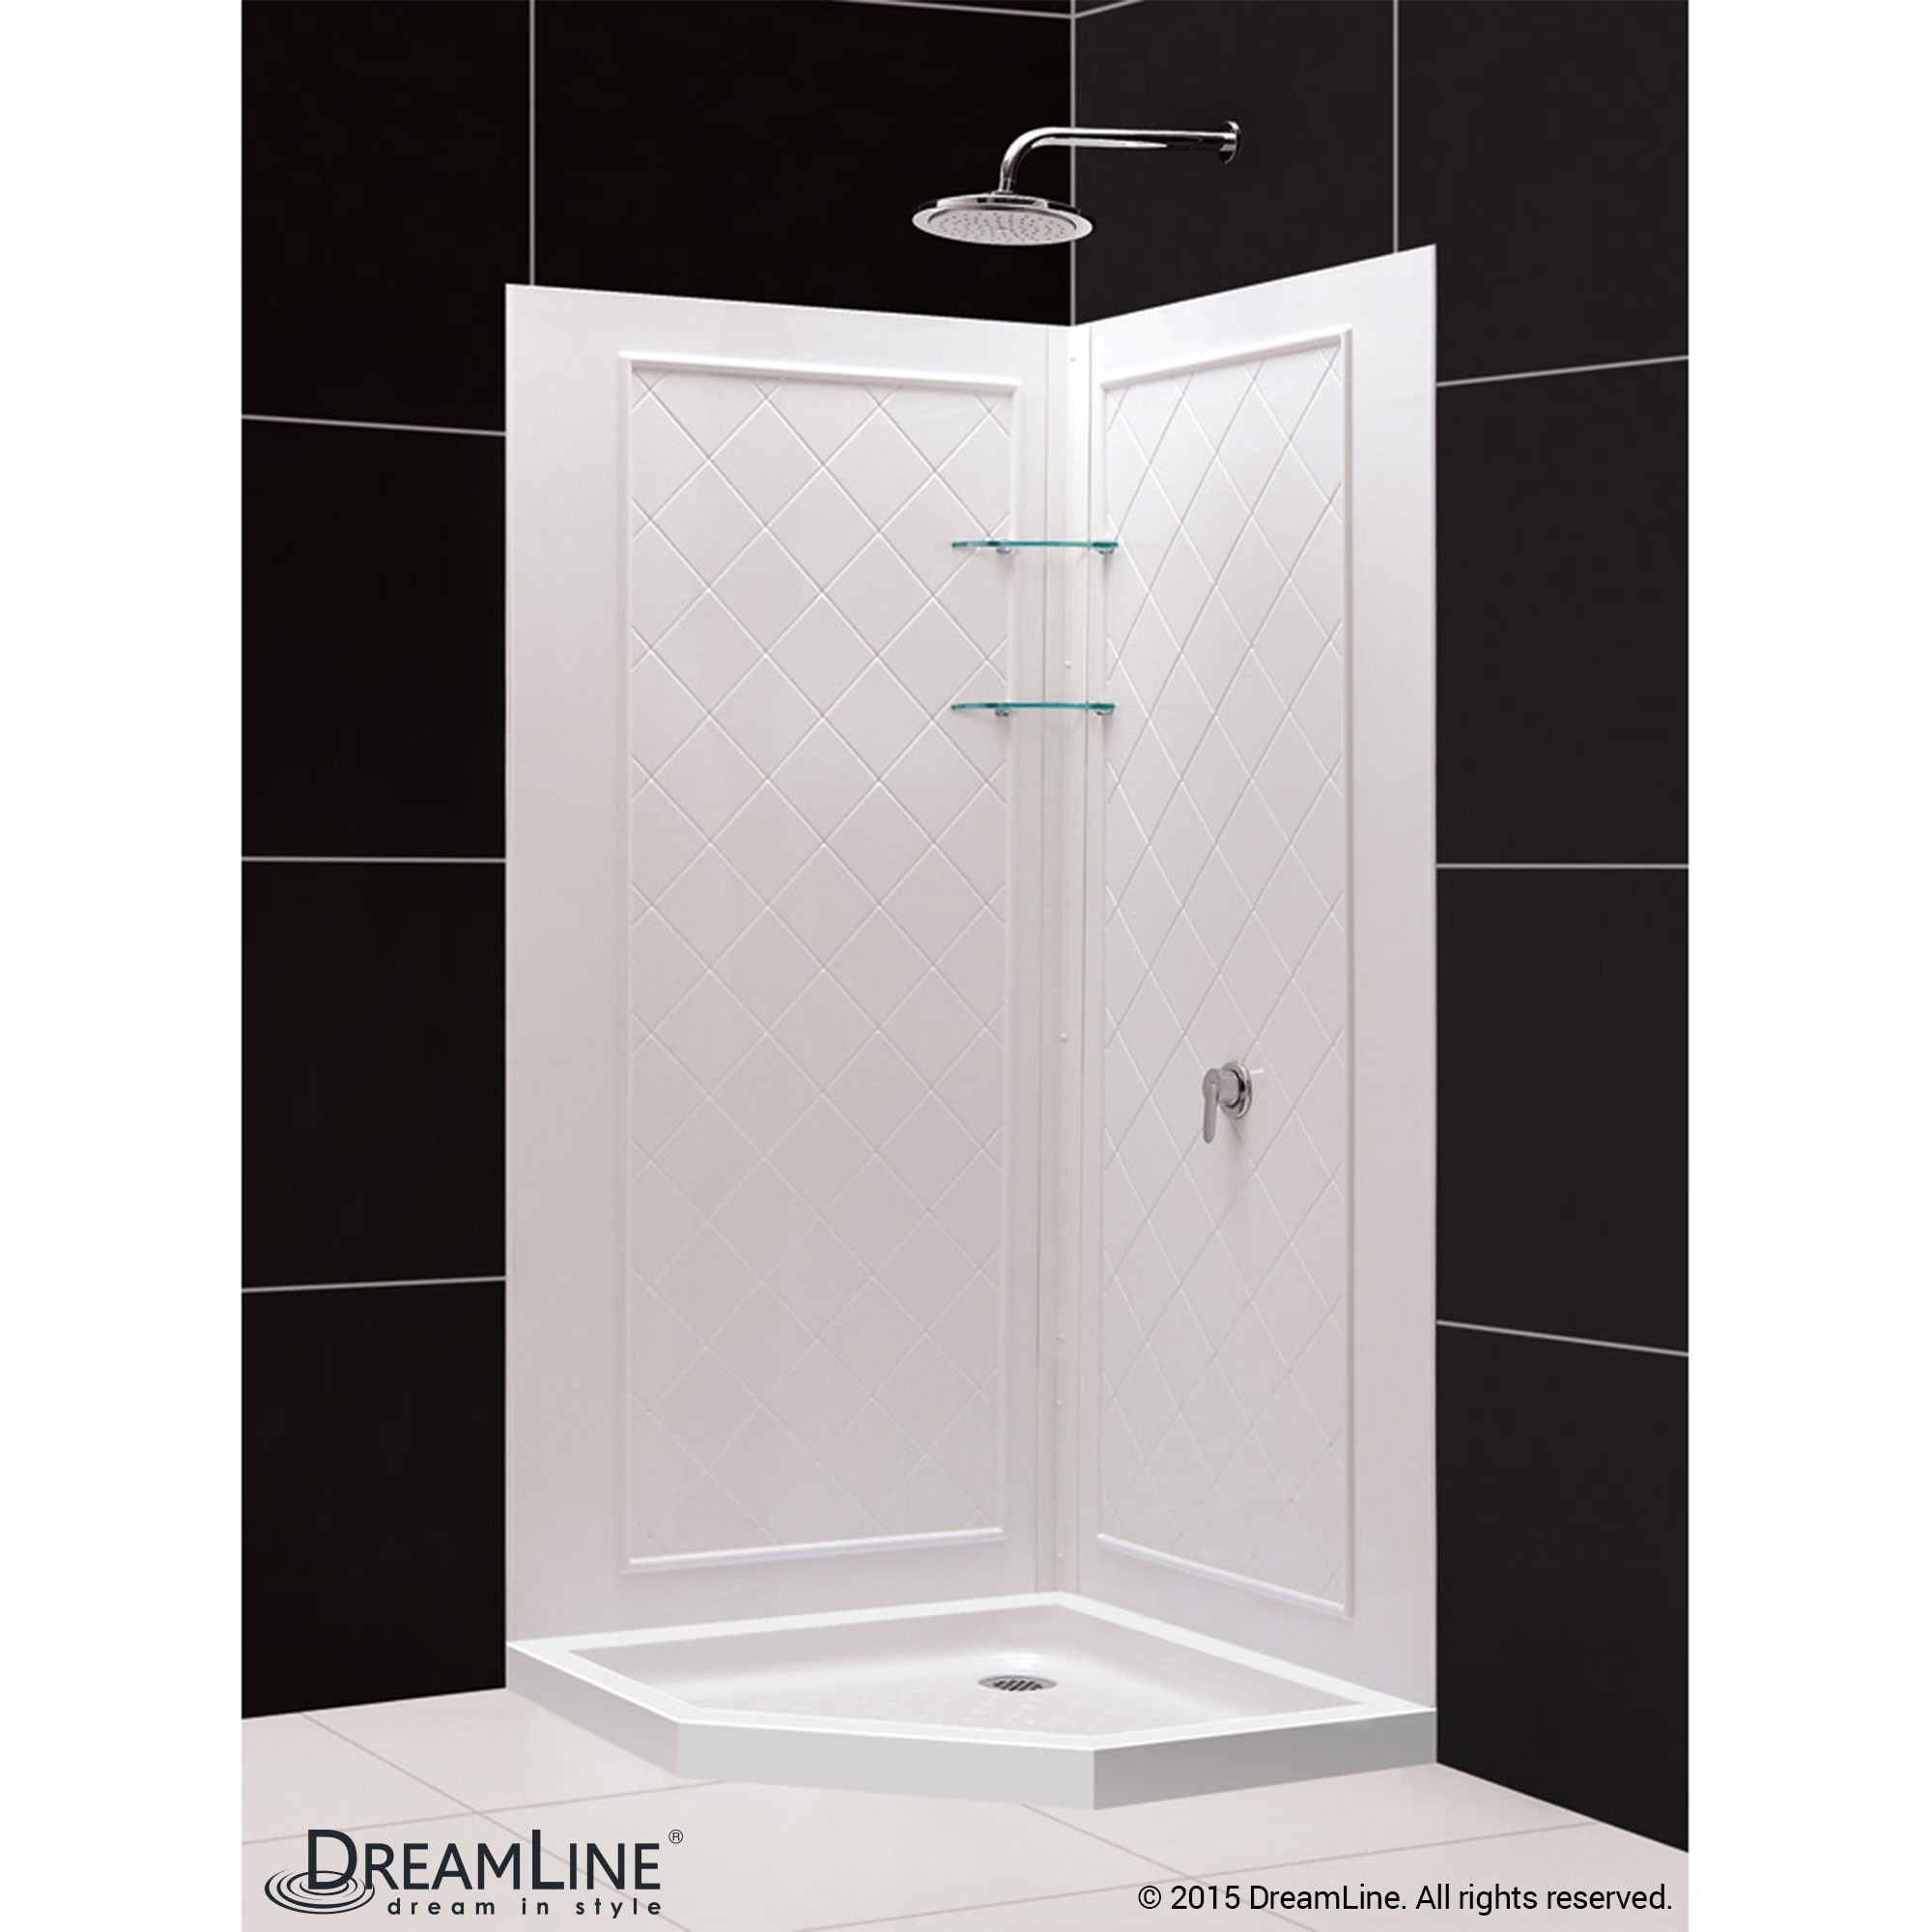 SlimLine 36   42 in. x 36   42 in. Neo Angle Shower Base and QWALL